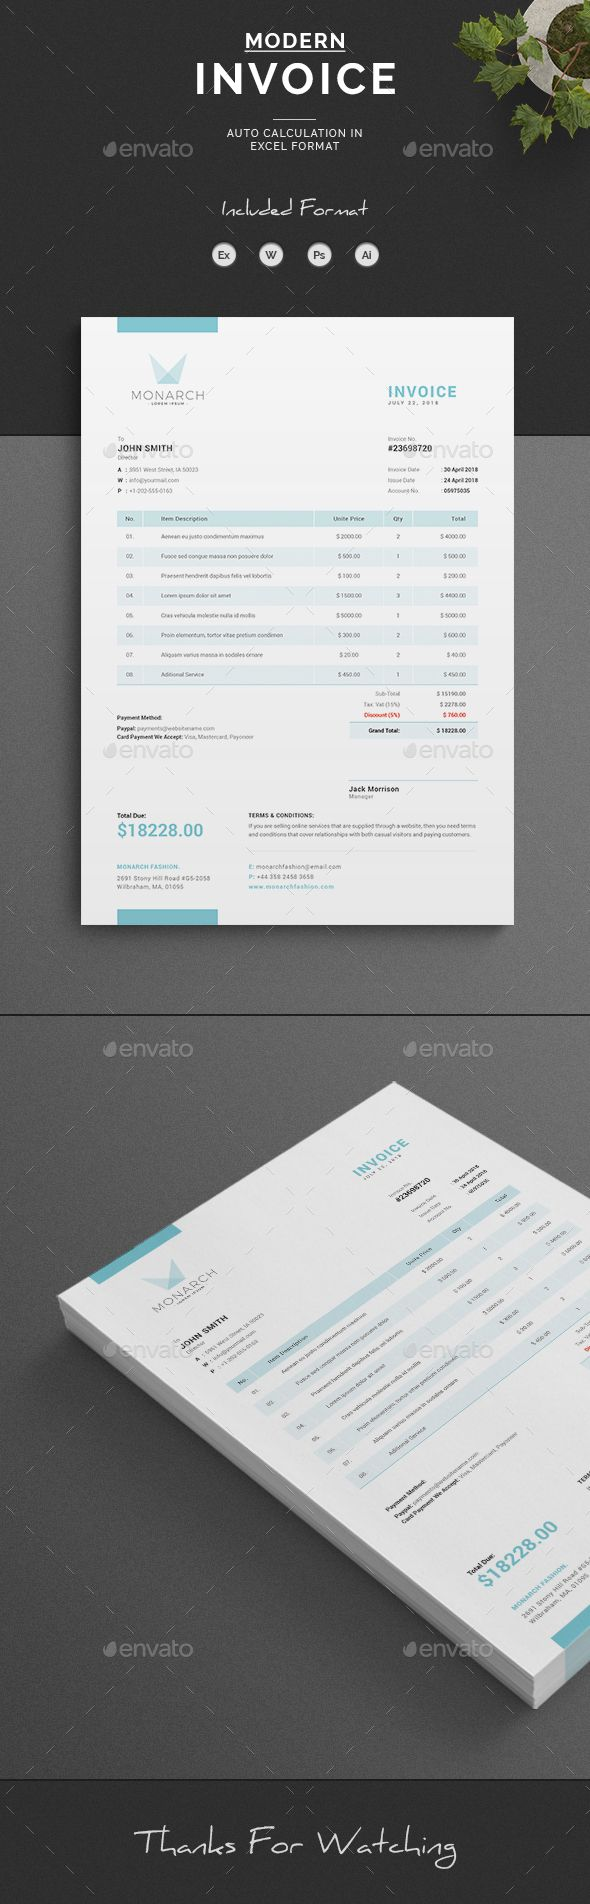 Best Company Invoice Templates Images On   Invoice